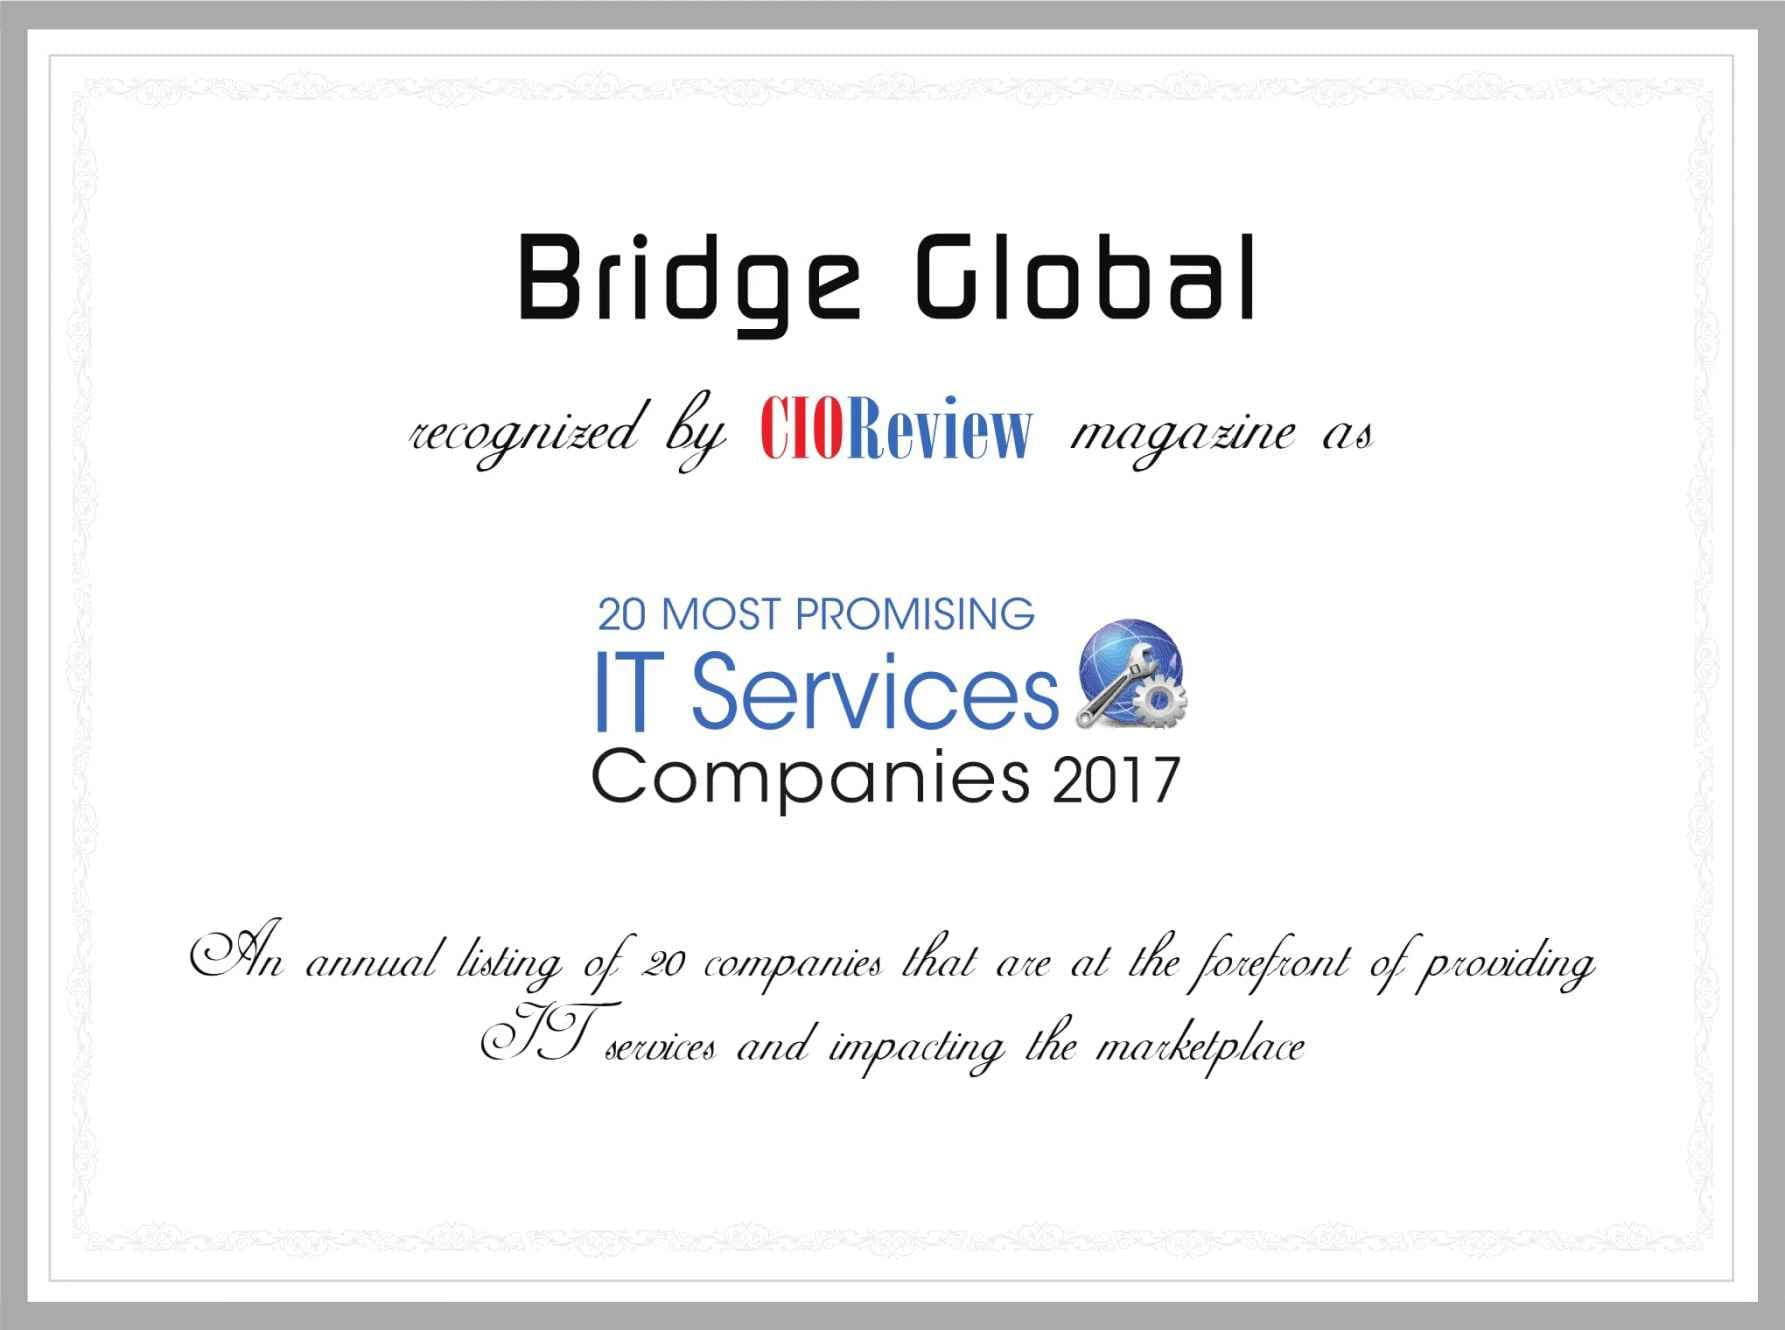 Bridge Global Recognized by CIOReview magazine among 20 most promising IT services companies 2017